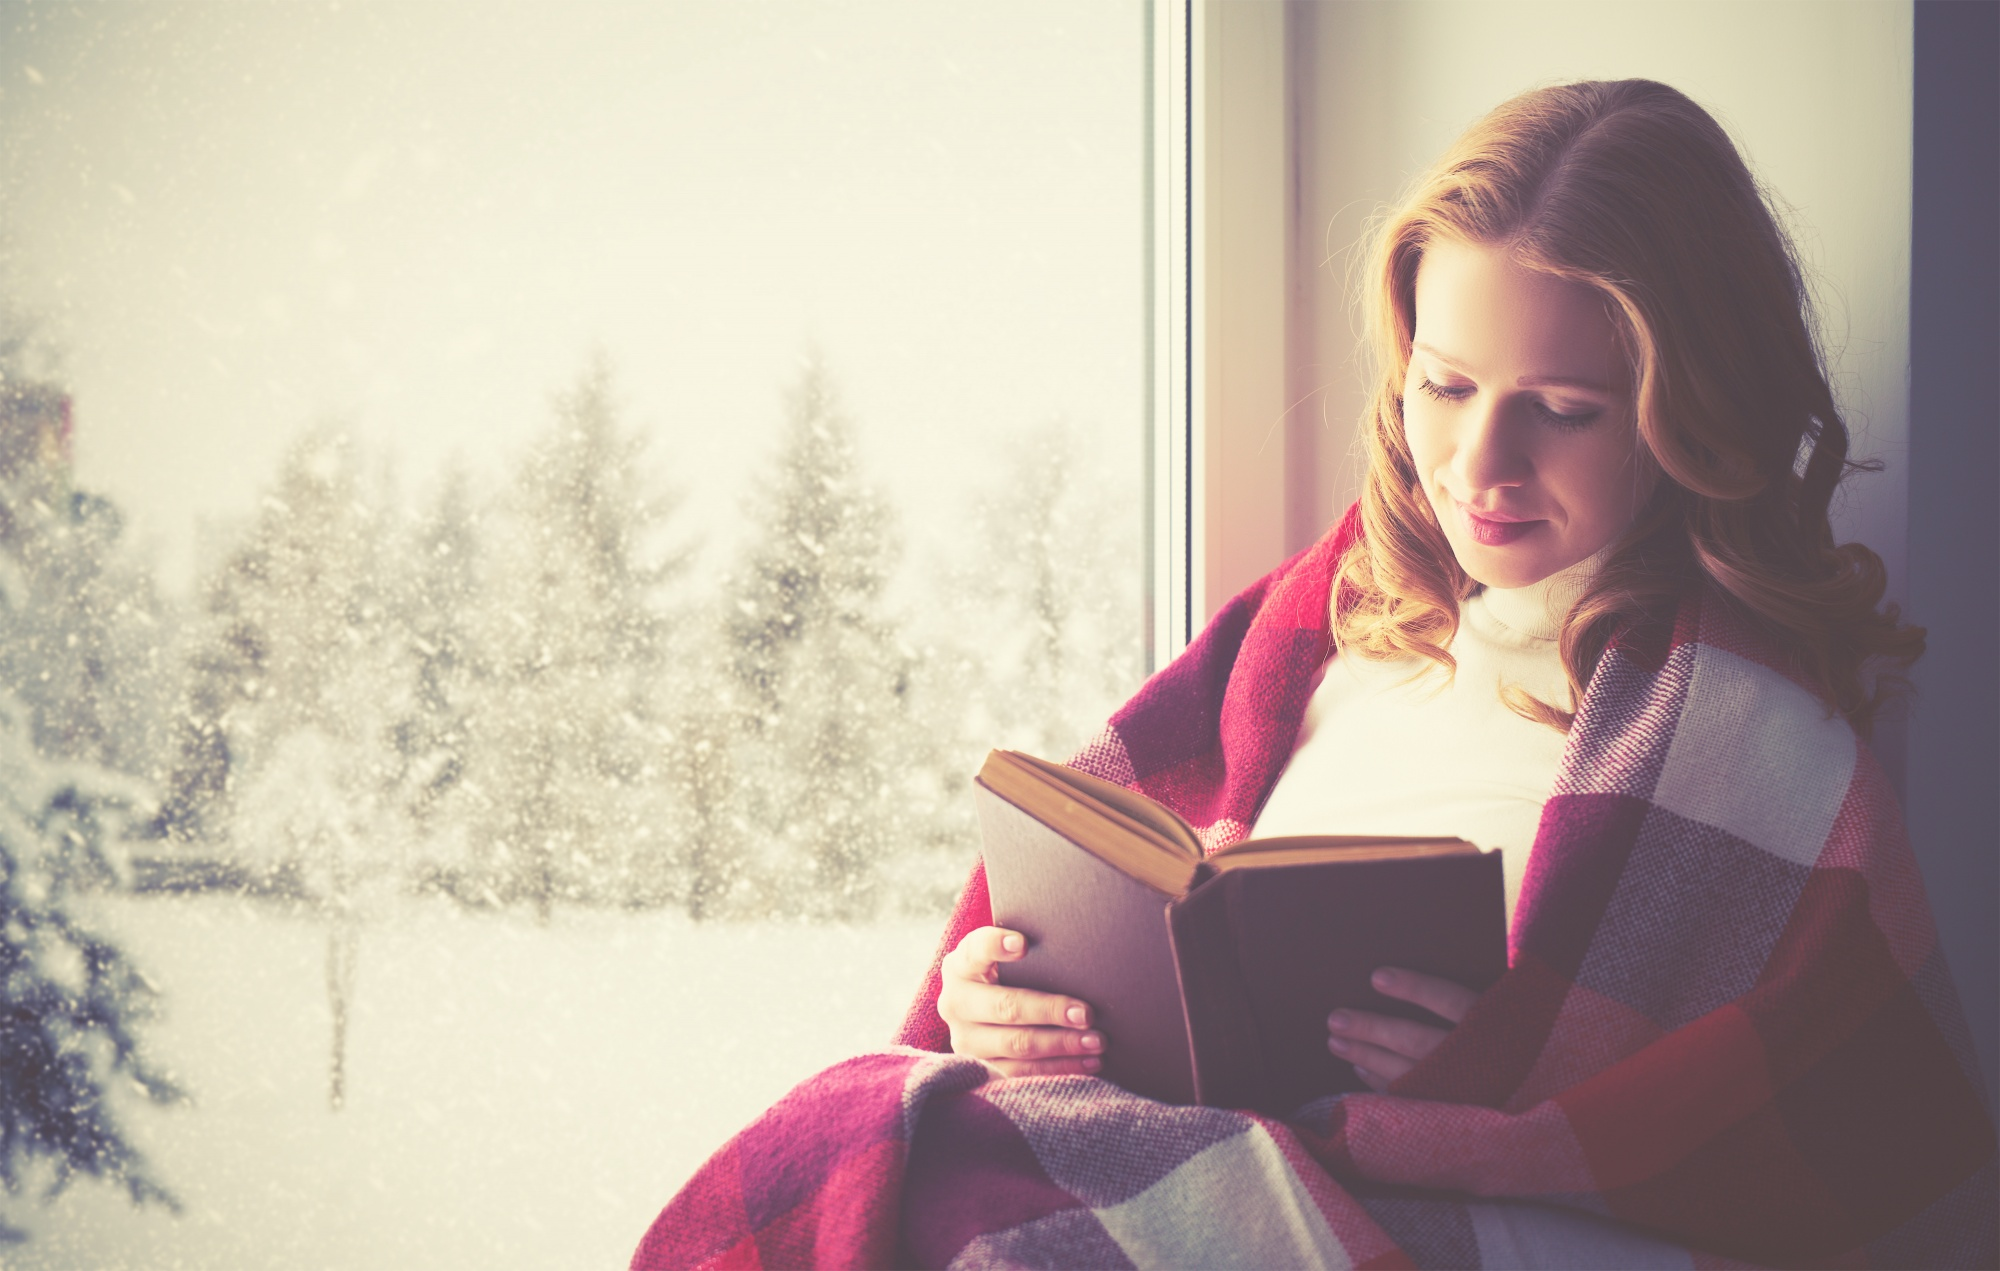 Happy woman reading a book by the window in the winter wrapped in red blanket